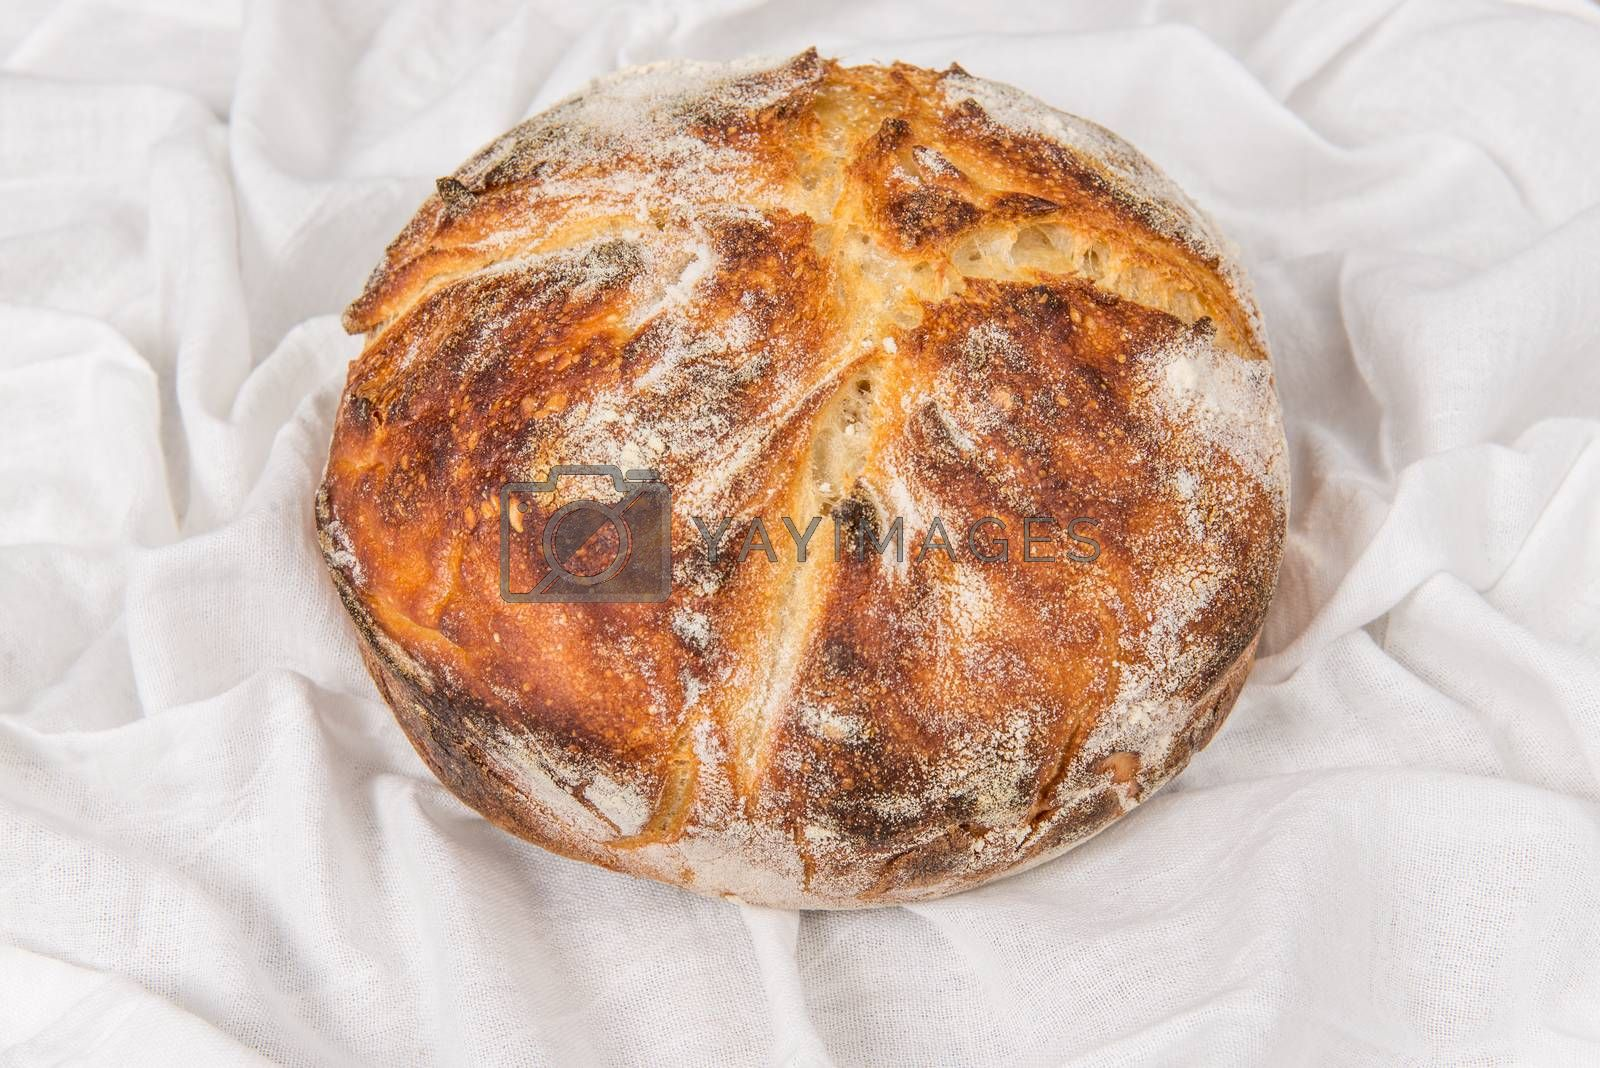 Fresh baked loaf of sour dough bread by Dan Totilca